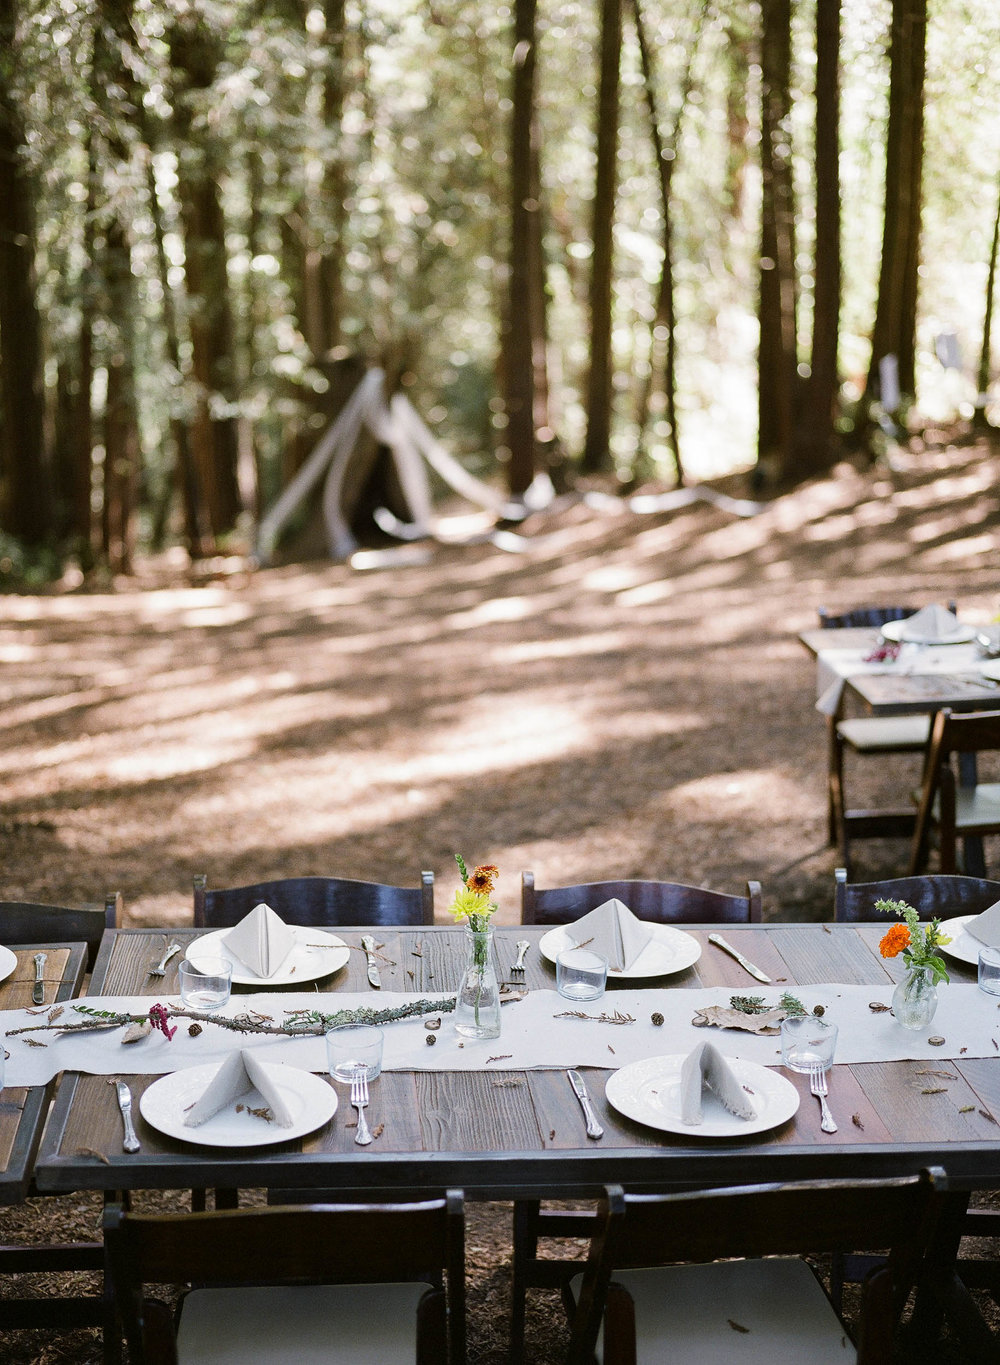 00009344_Redwoods Wedding_Film_Buena Lane Photography_002.jpg